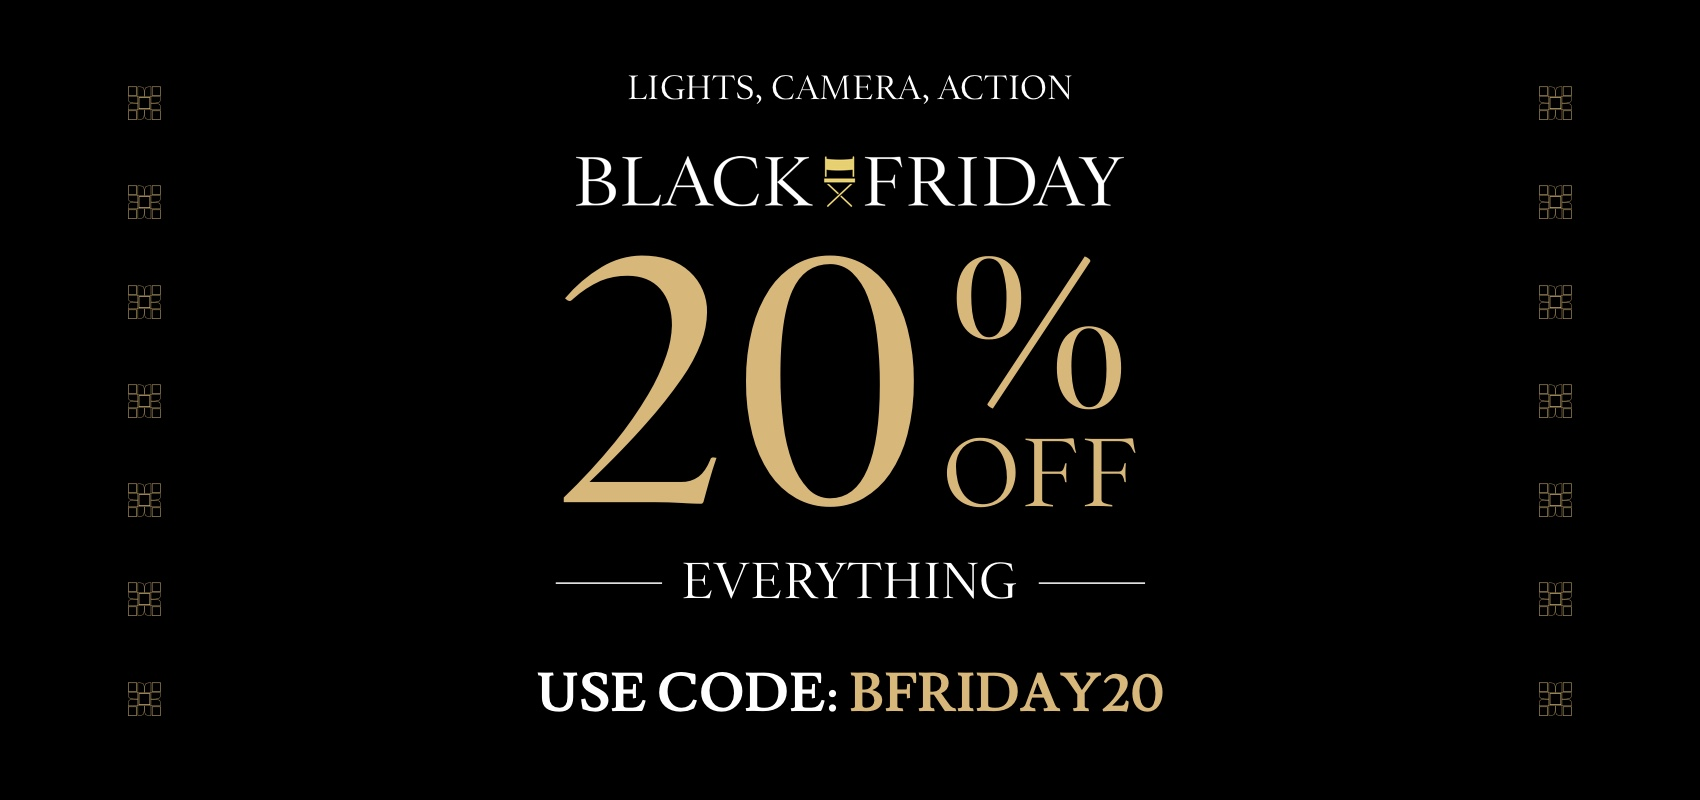 Charles Tyrwhitt Black Friday 20% off with code BFRIDAY20